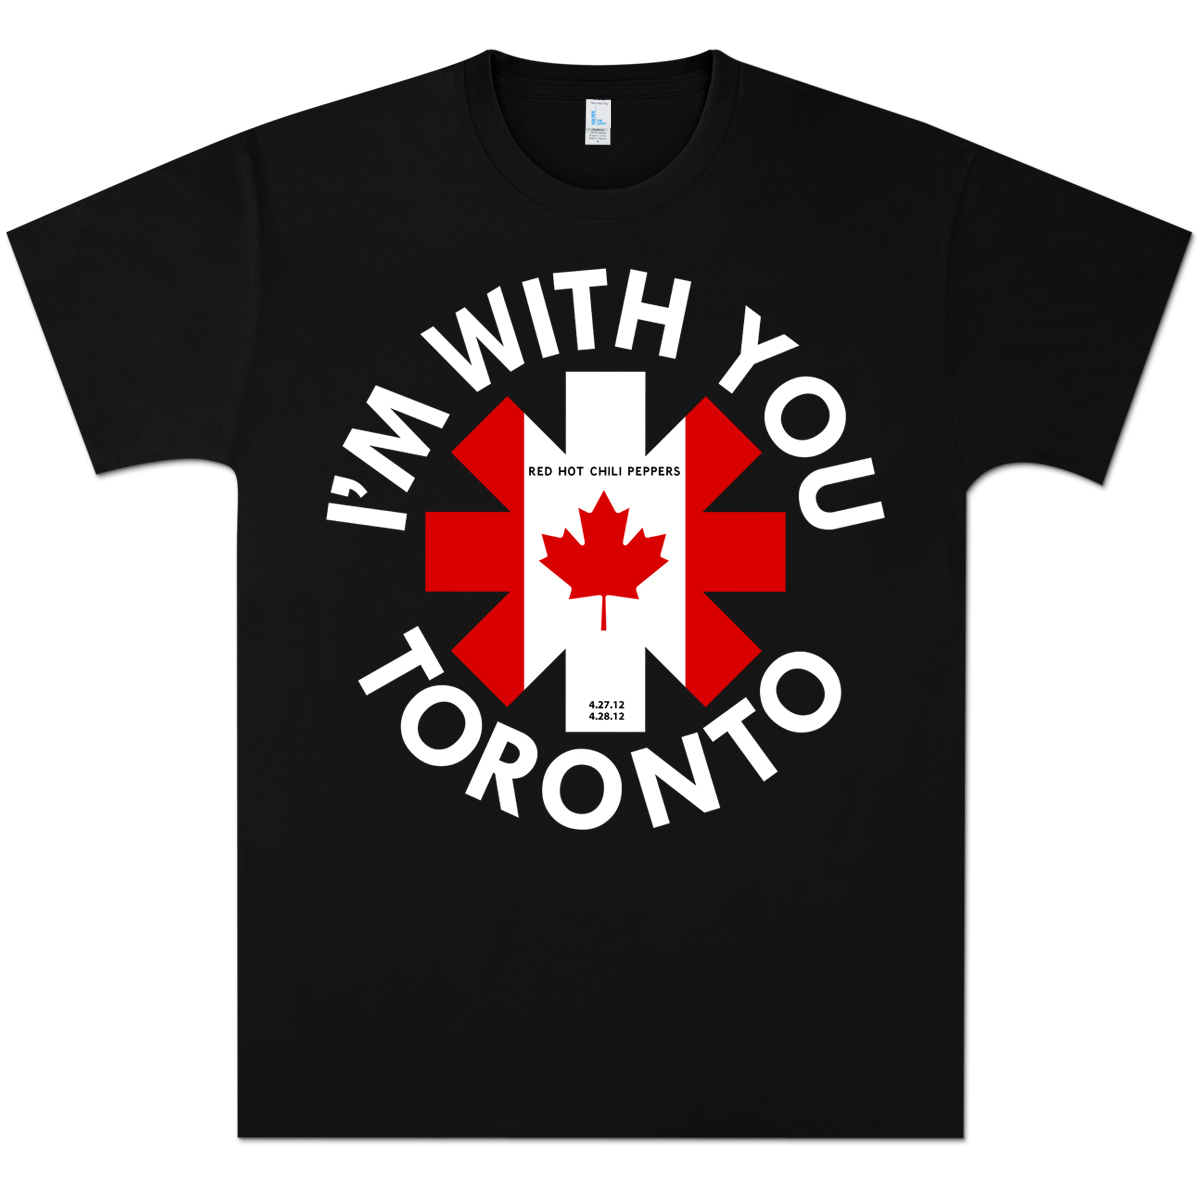 Red Hot Chili Peppers Toronto Event T-Shirt